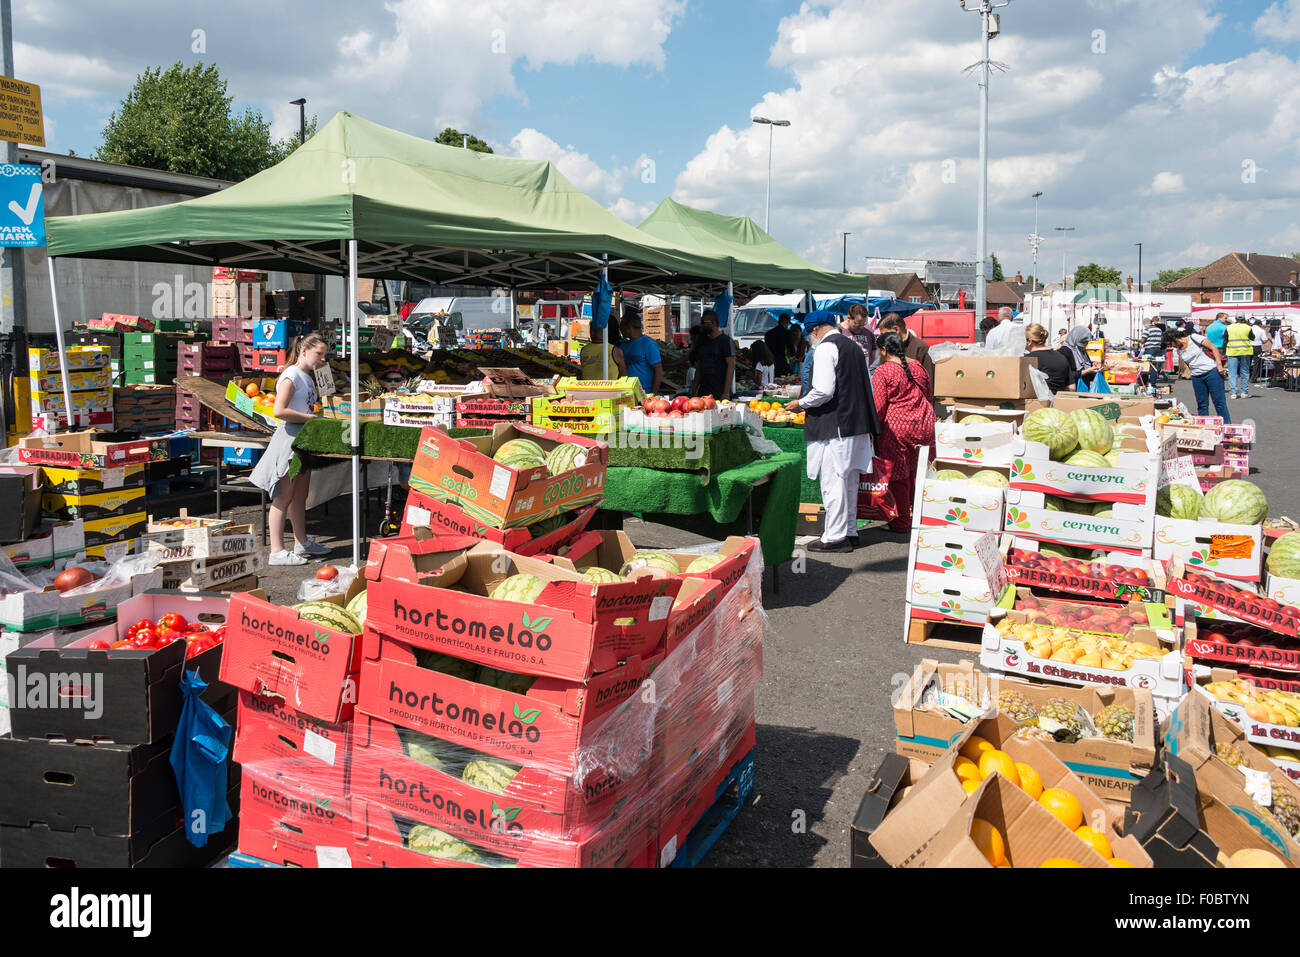 Hounslow West Parkplatz Auto Boot Markt, Hounslow West London Borough of Hounslow, Greater London, England, United Stockbild